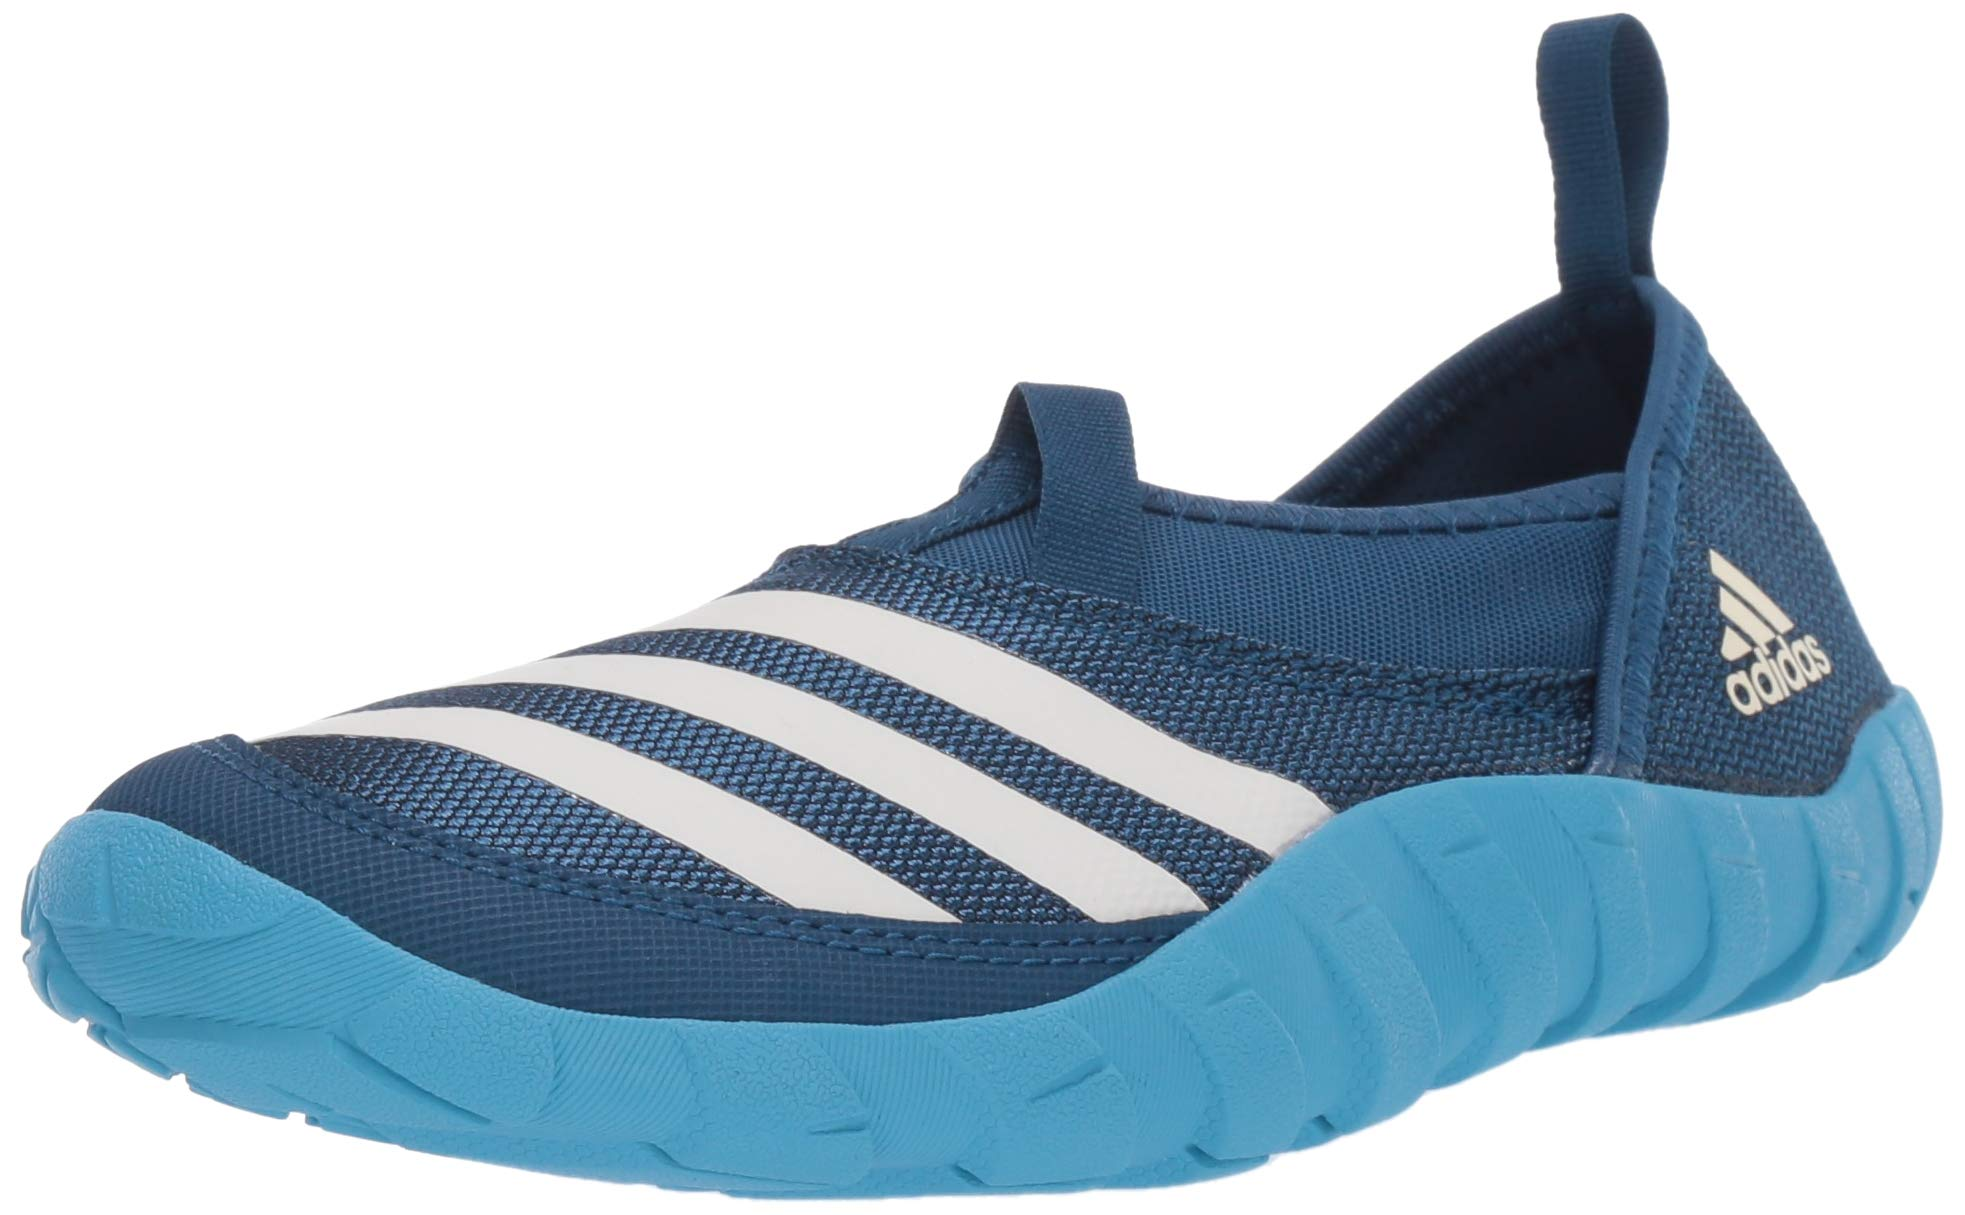 adidas outdoor Jawpaw Kids Water Sports Shoe Walking, Legend Marine/Chalk White/Shock Cyan, 6 Child US Big